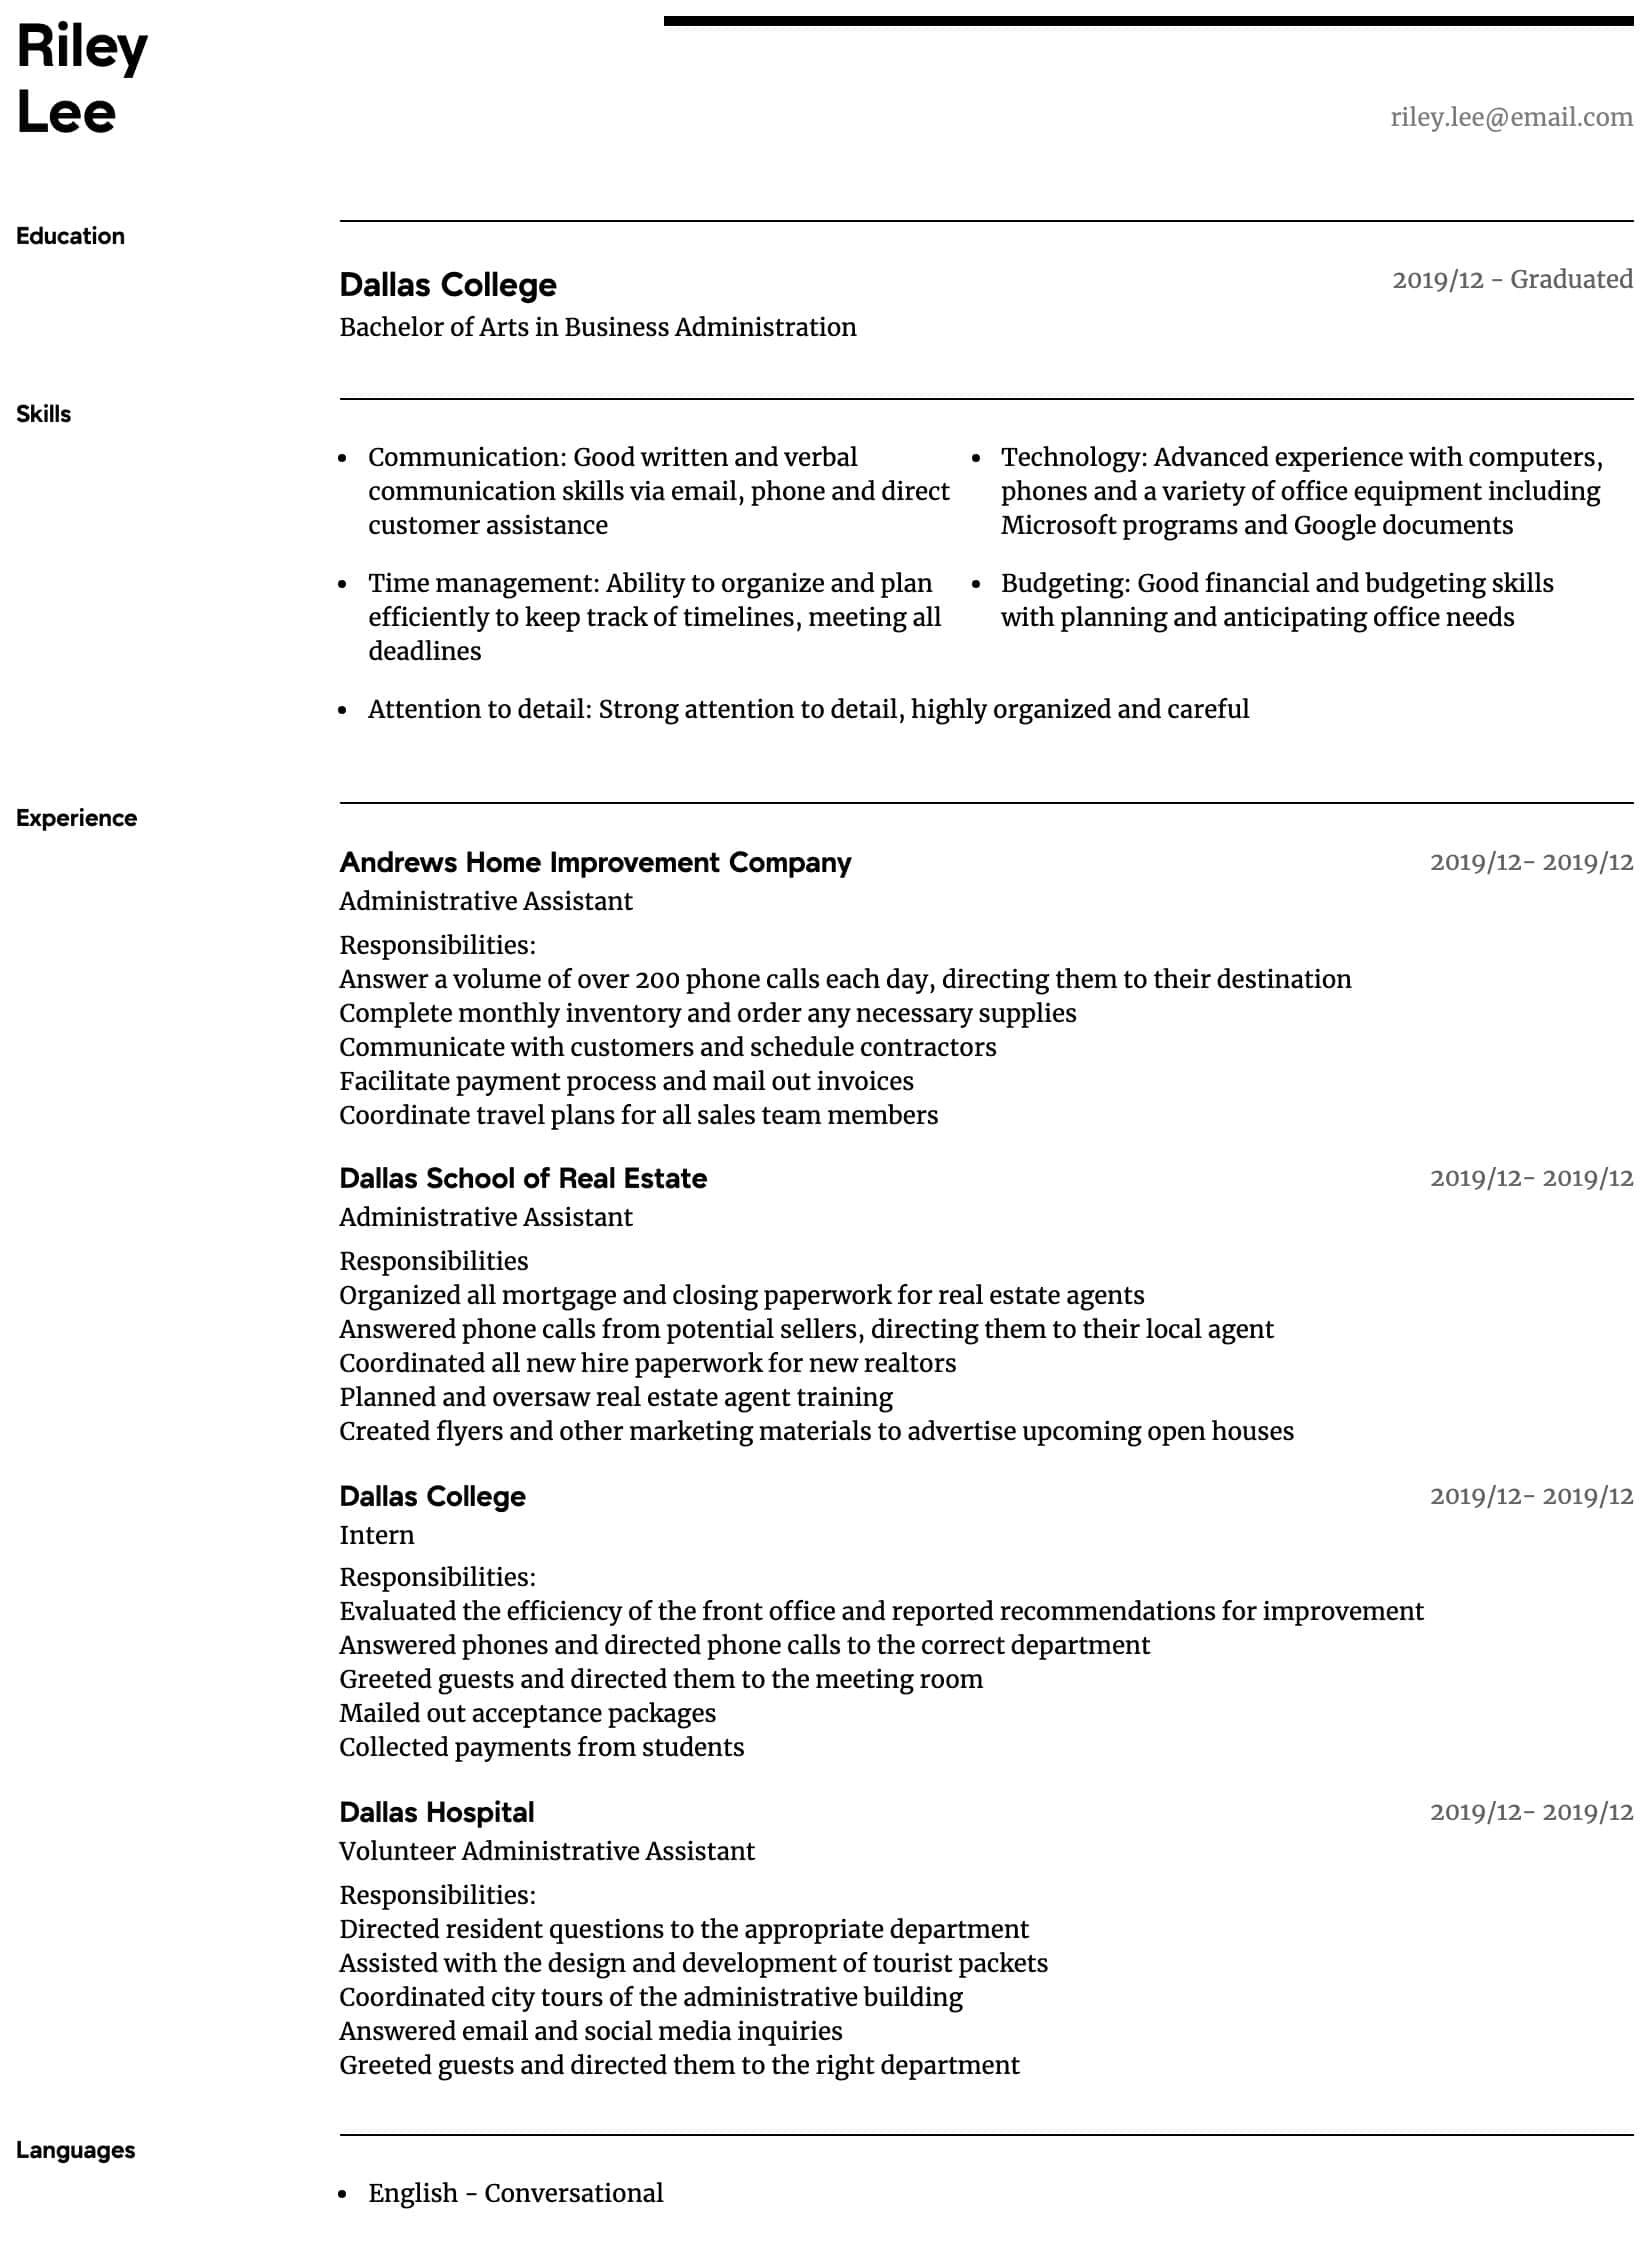 administrative assistant resume samples all experience levels professional intermediate Resume Professional Administrative Assistant Resume